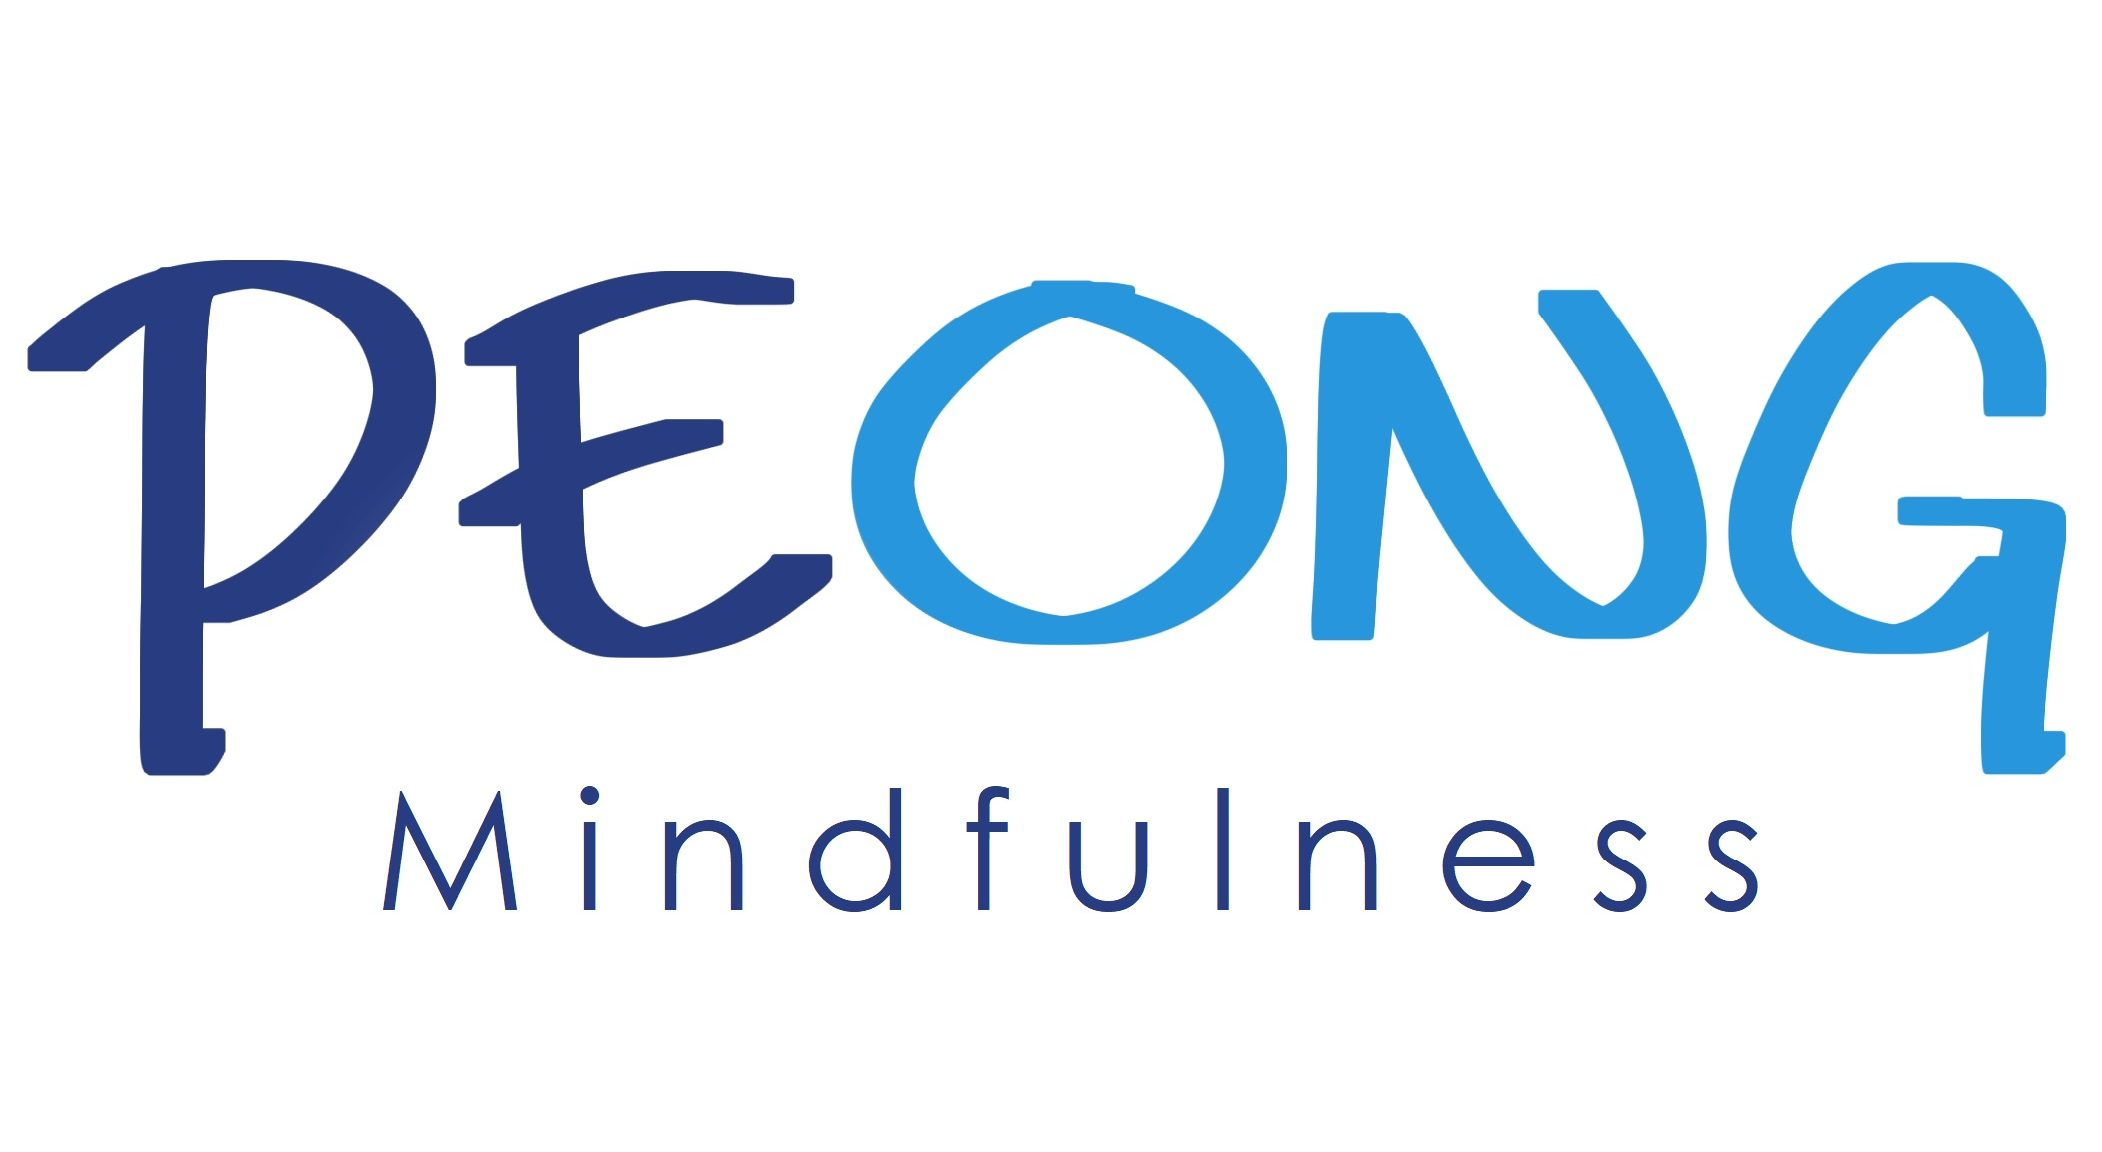 PEONG Mindfulness Singapore